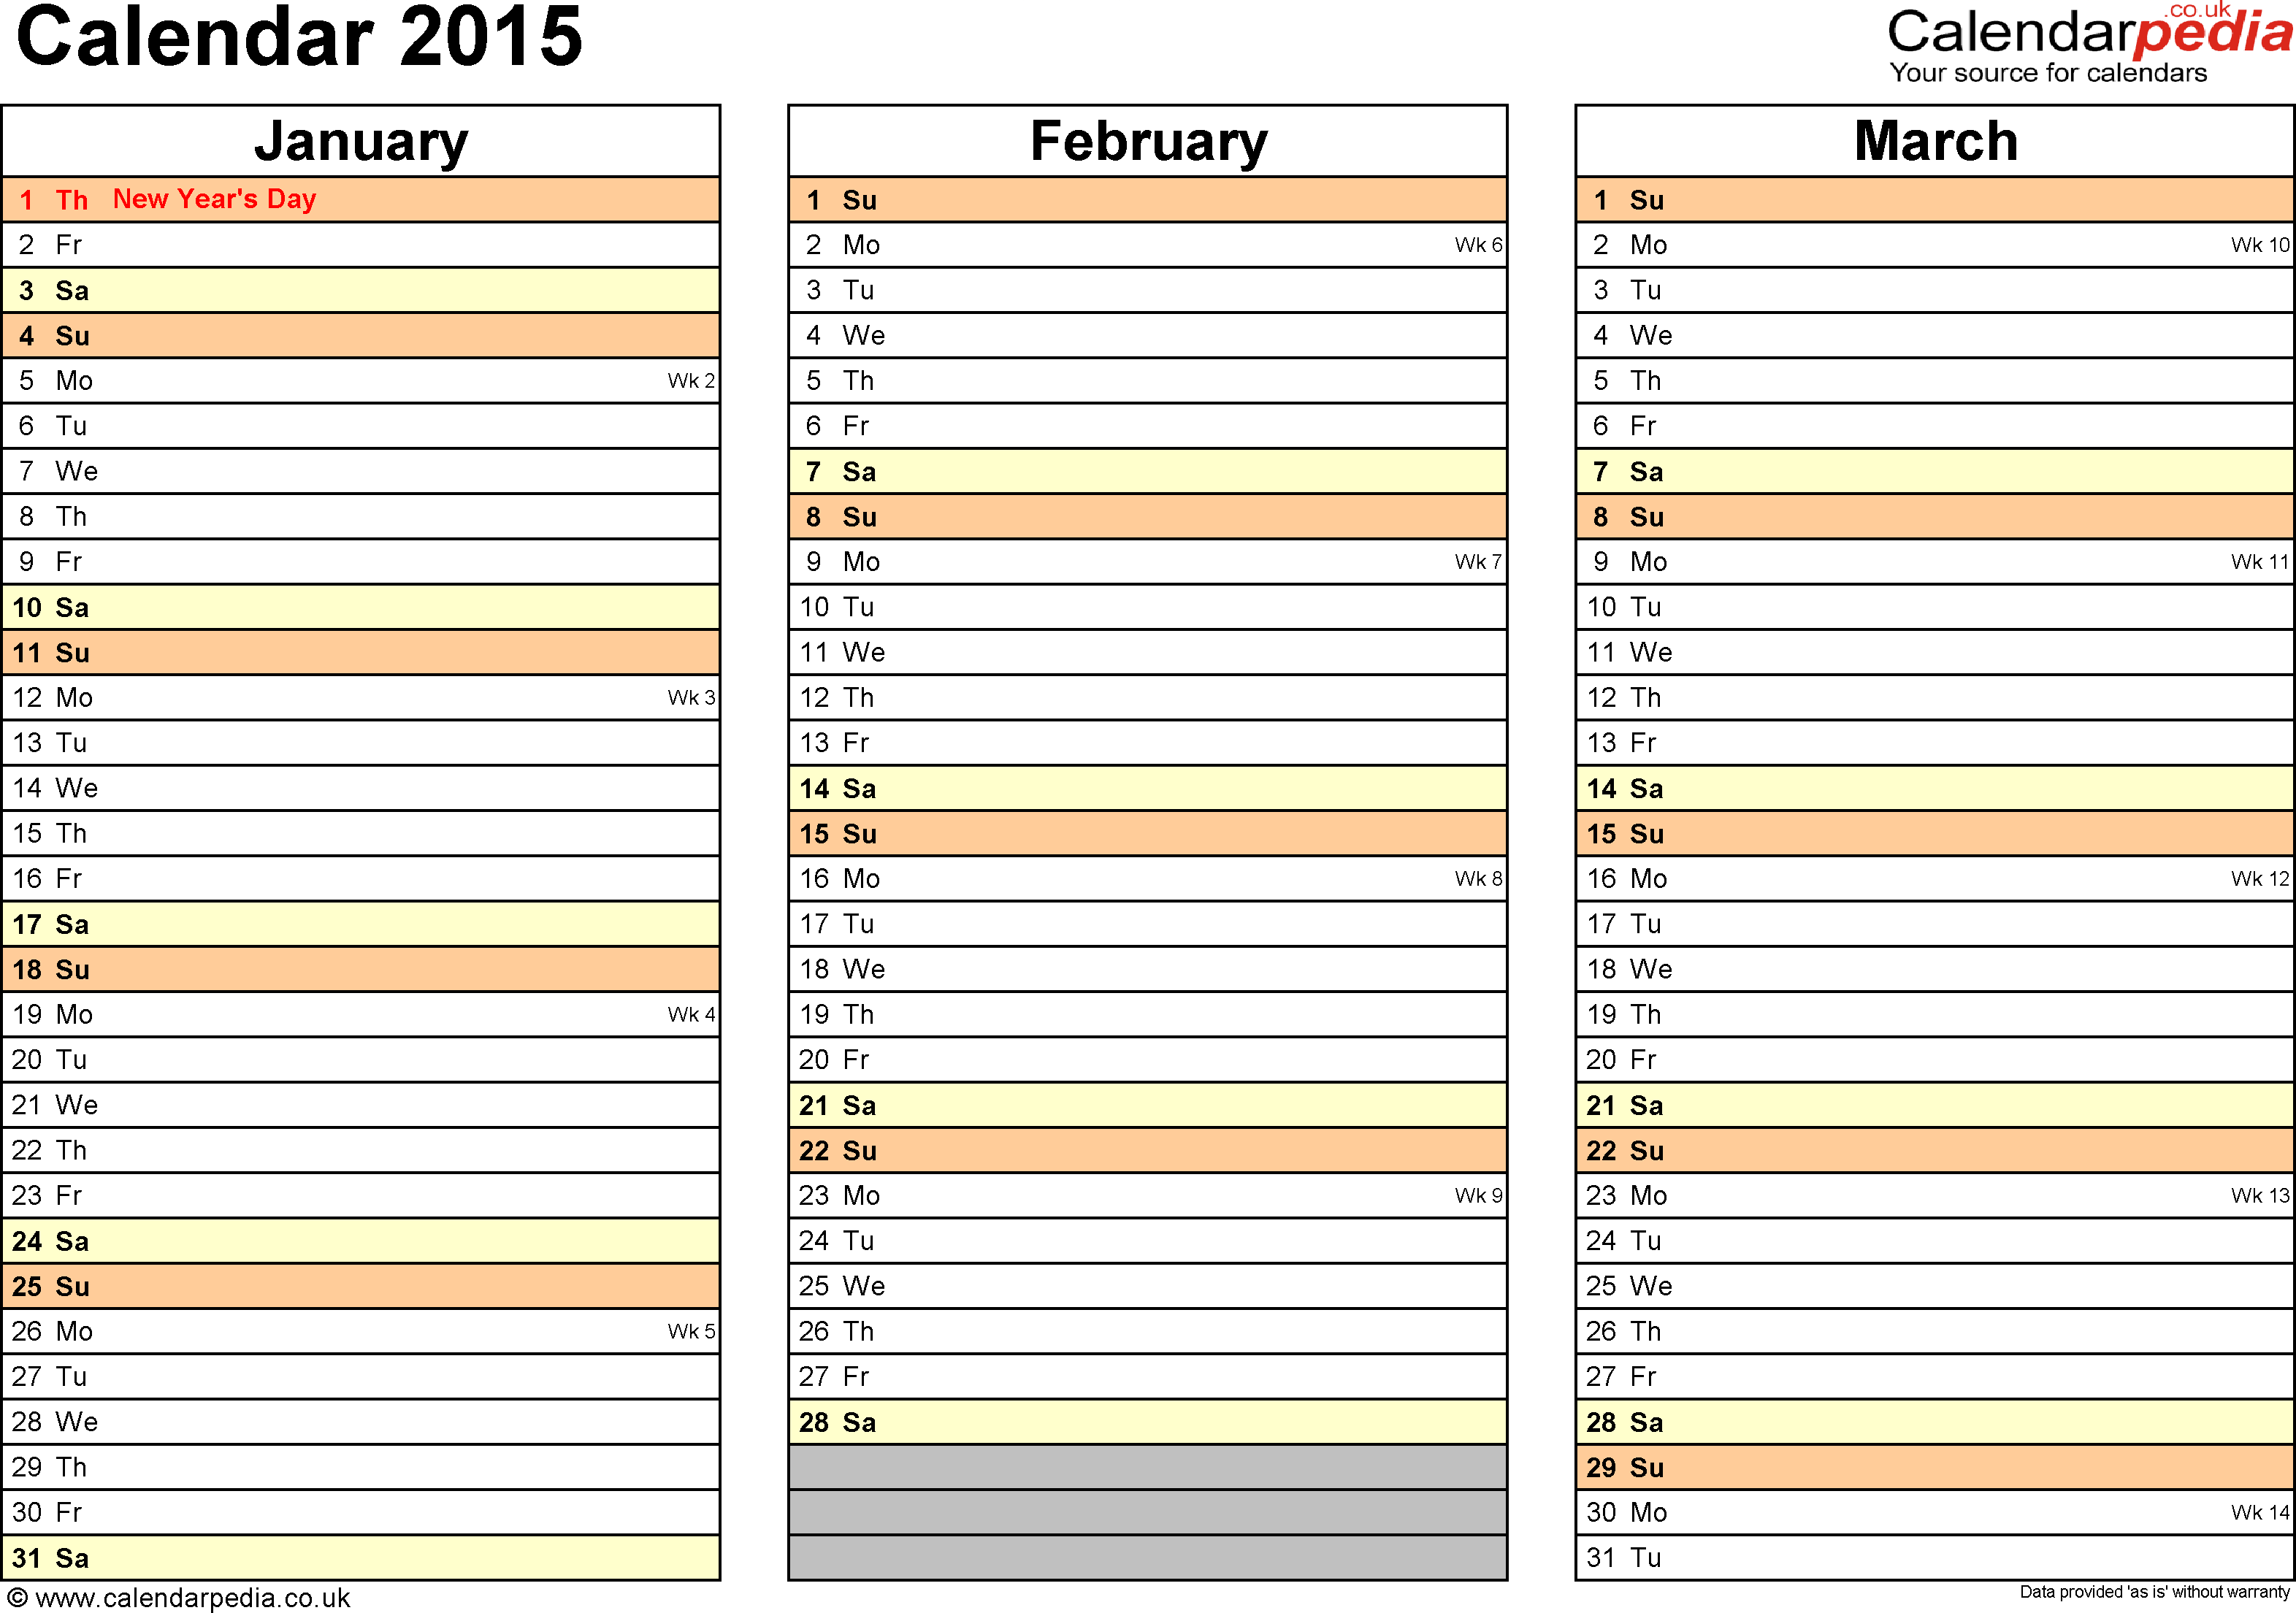 Download Template 5: Yearly calendar 2015 as Excel template, landscape orientation, 4 pages, months horizontally, days vertically, with UK bank holidays and week numbers